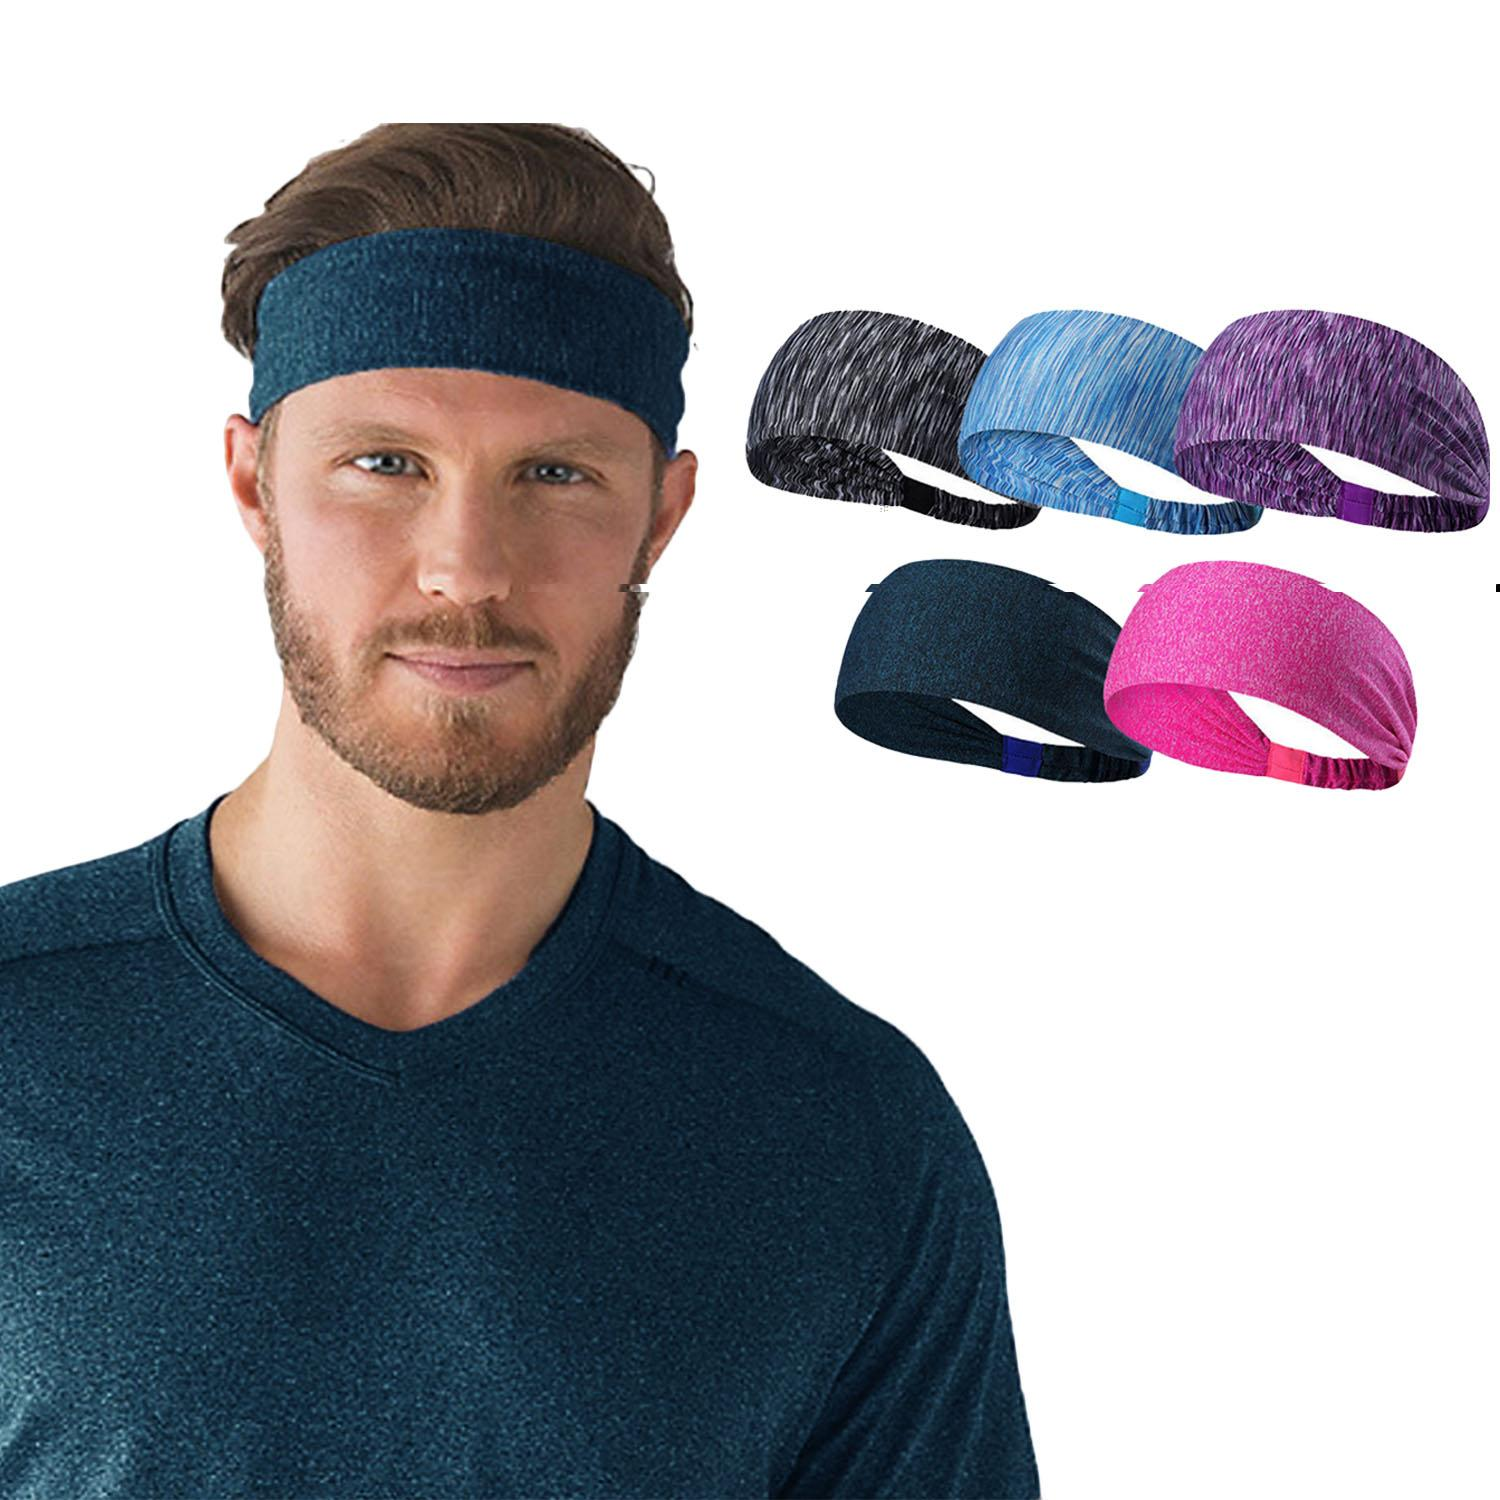 5 Pcs Assorted Colors Unisex Men Women Elastic Moisture Wicking Headband Sweatbands Sports Workout Sweat Band For Yoga Cycling Running Fitness Exercise By Duha.